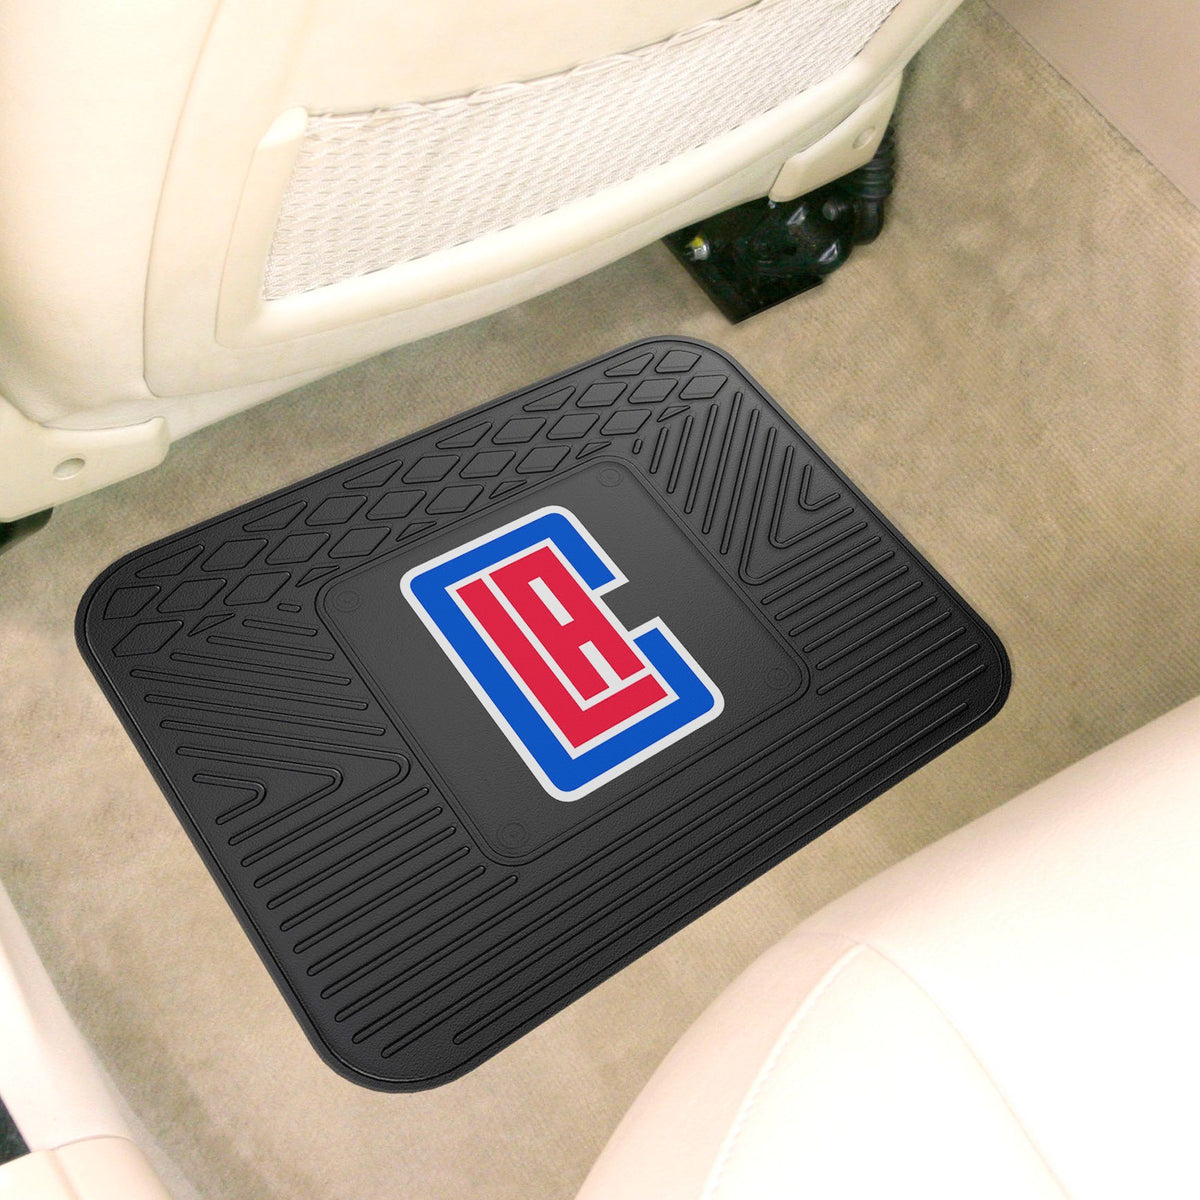 NBA - Utility Mat NBA Mats, Rear Car Mats, Utility Mat, NBA, Auto Fan Mats Los Angeles Clippers